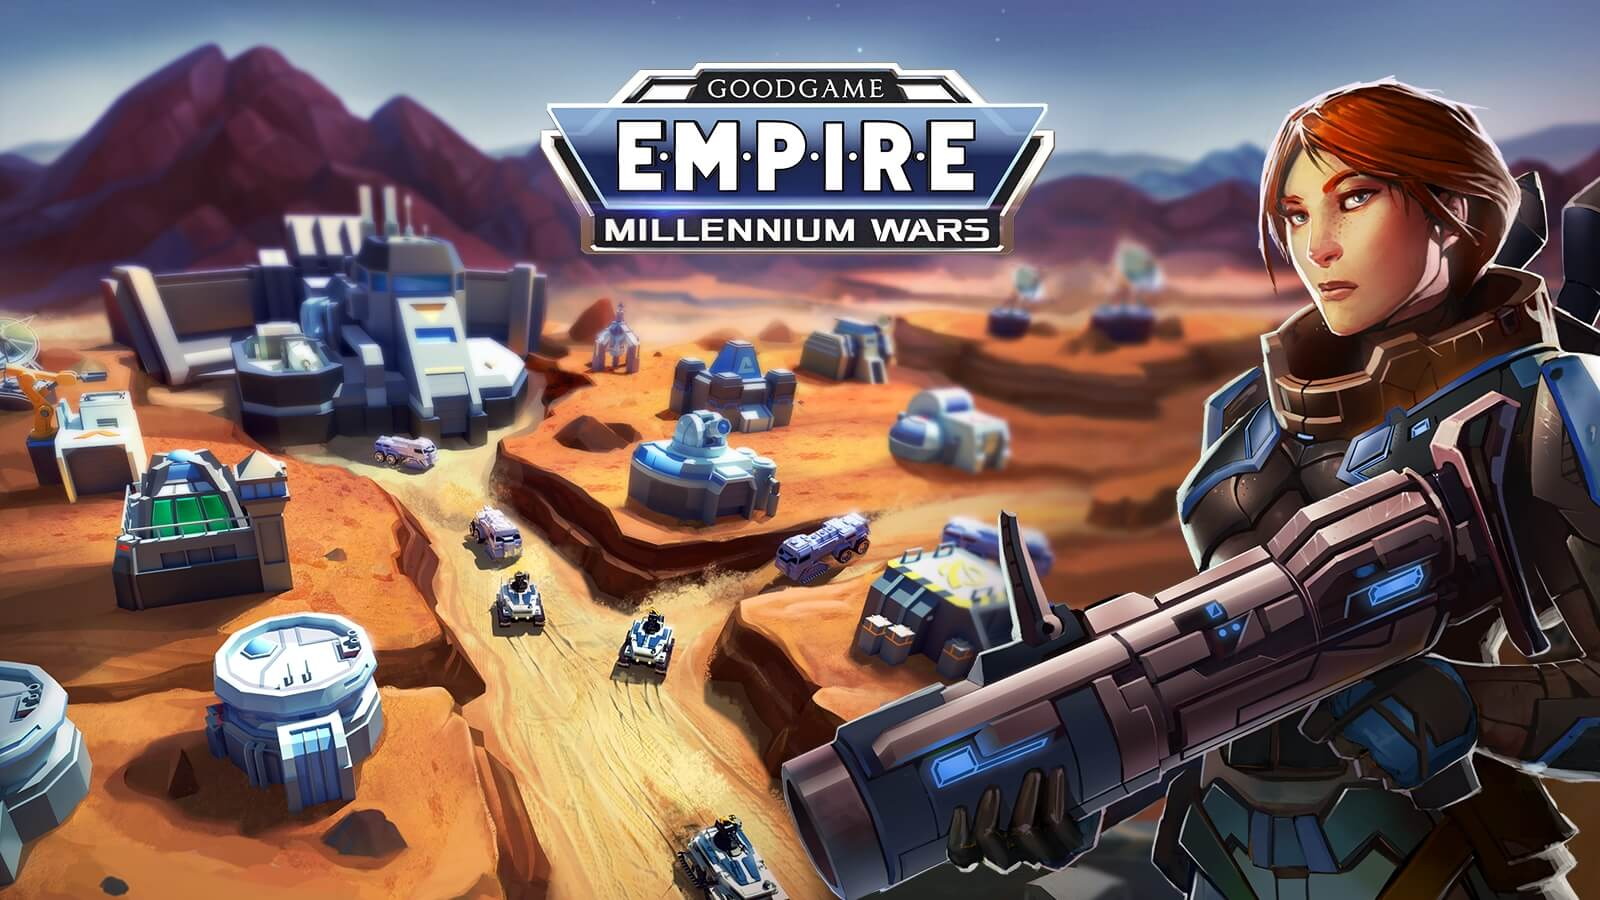 Empire: Millennium Wars